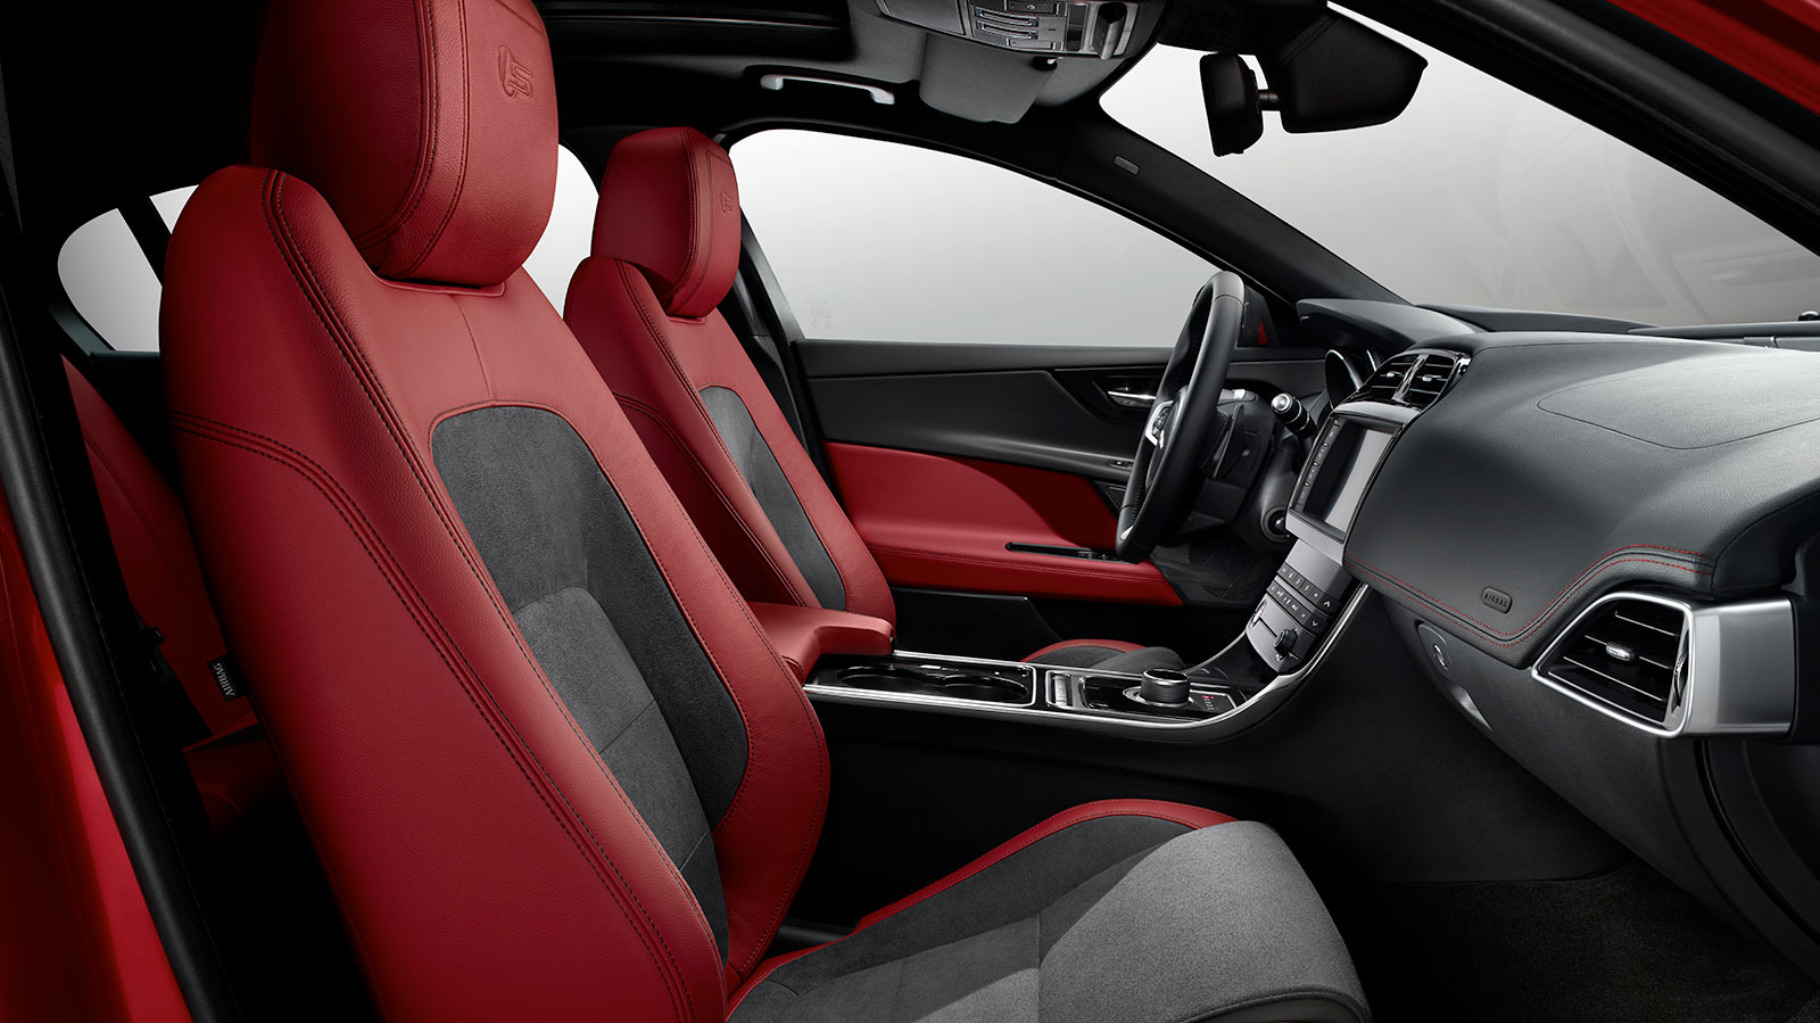 JAGUAR XE Interior Front Seats From a Side View.